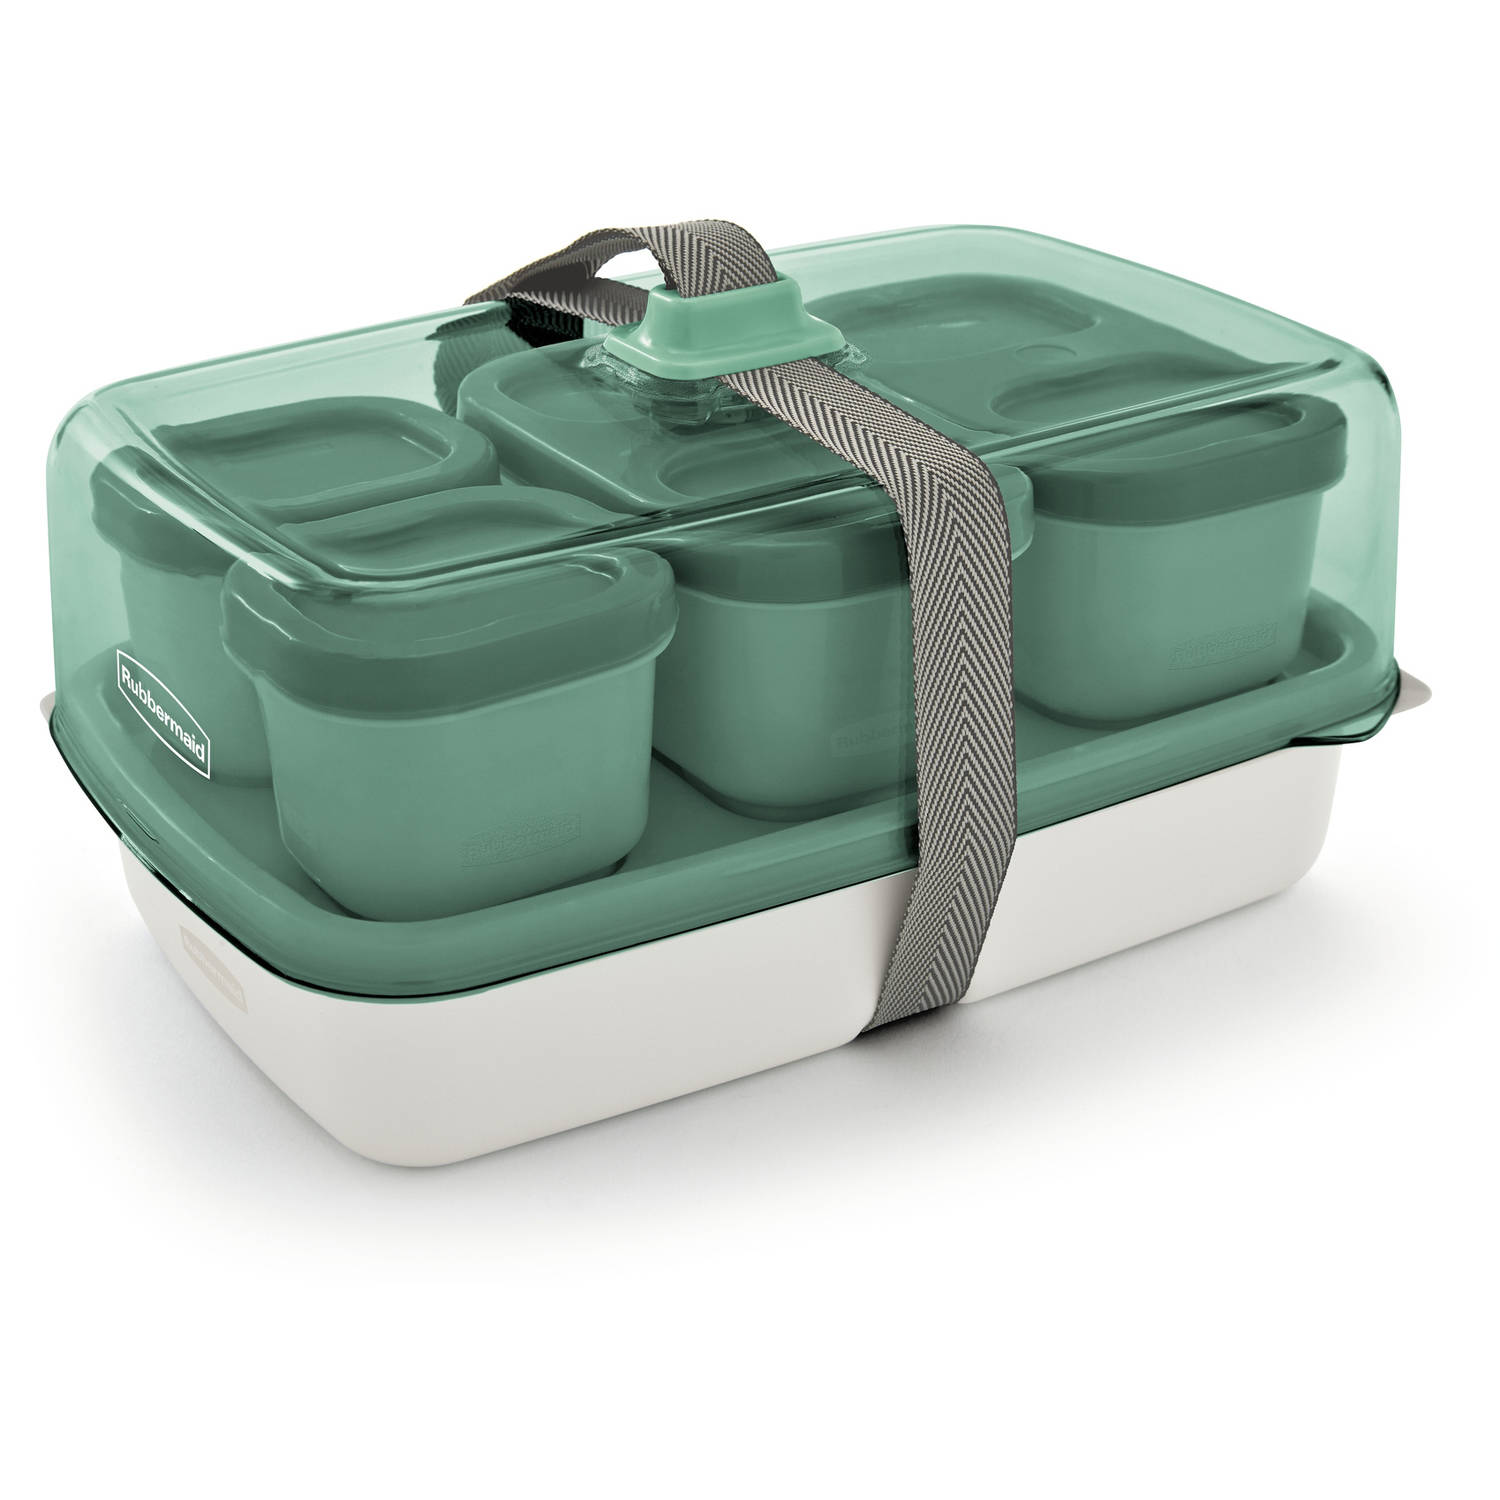 Rubbermaid Fasten + Go Entree/Salad Kit